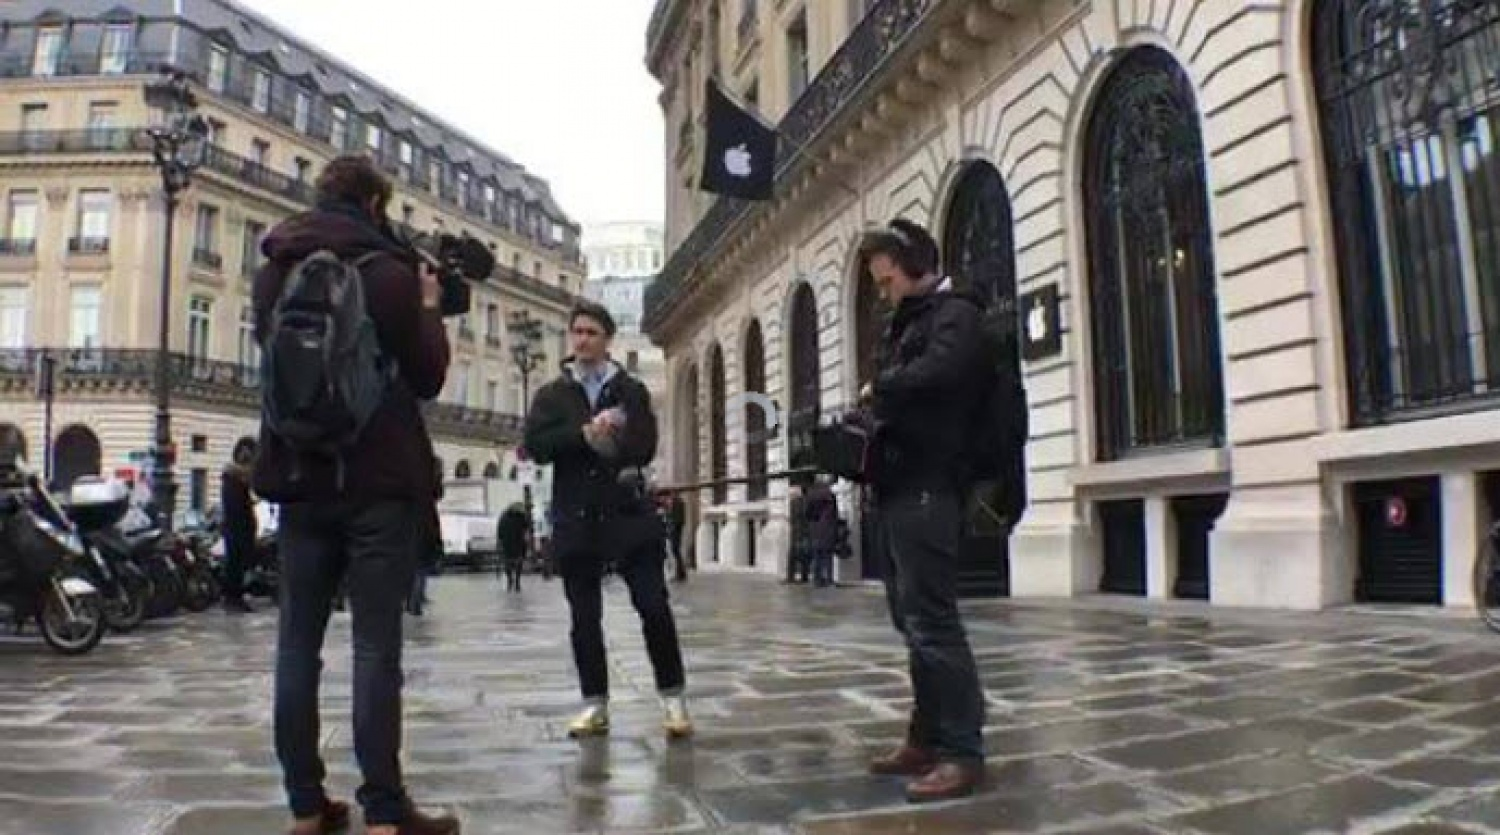 A French journalist is bringing fact checks to millions using Facebook Live